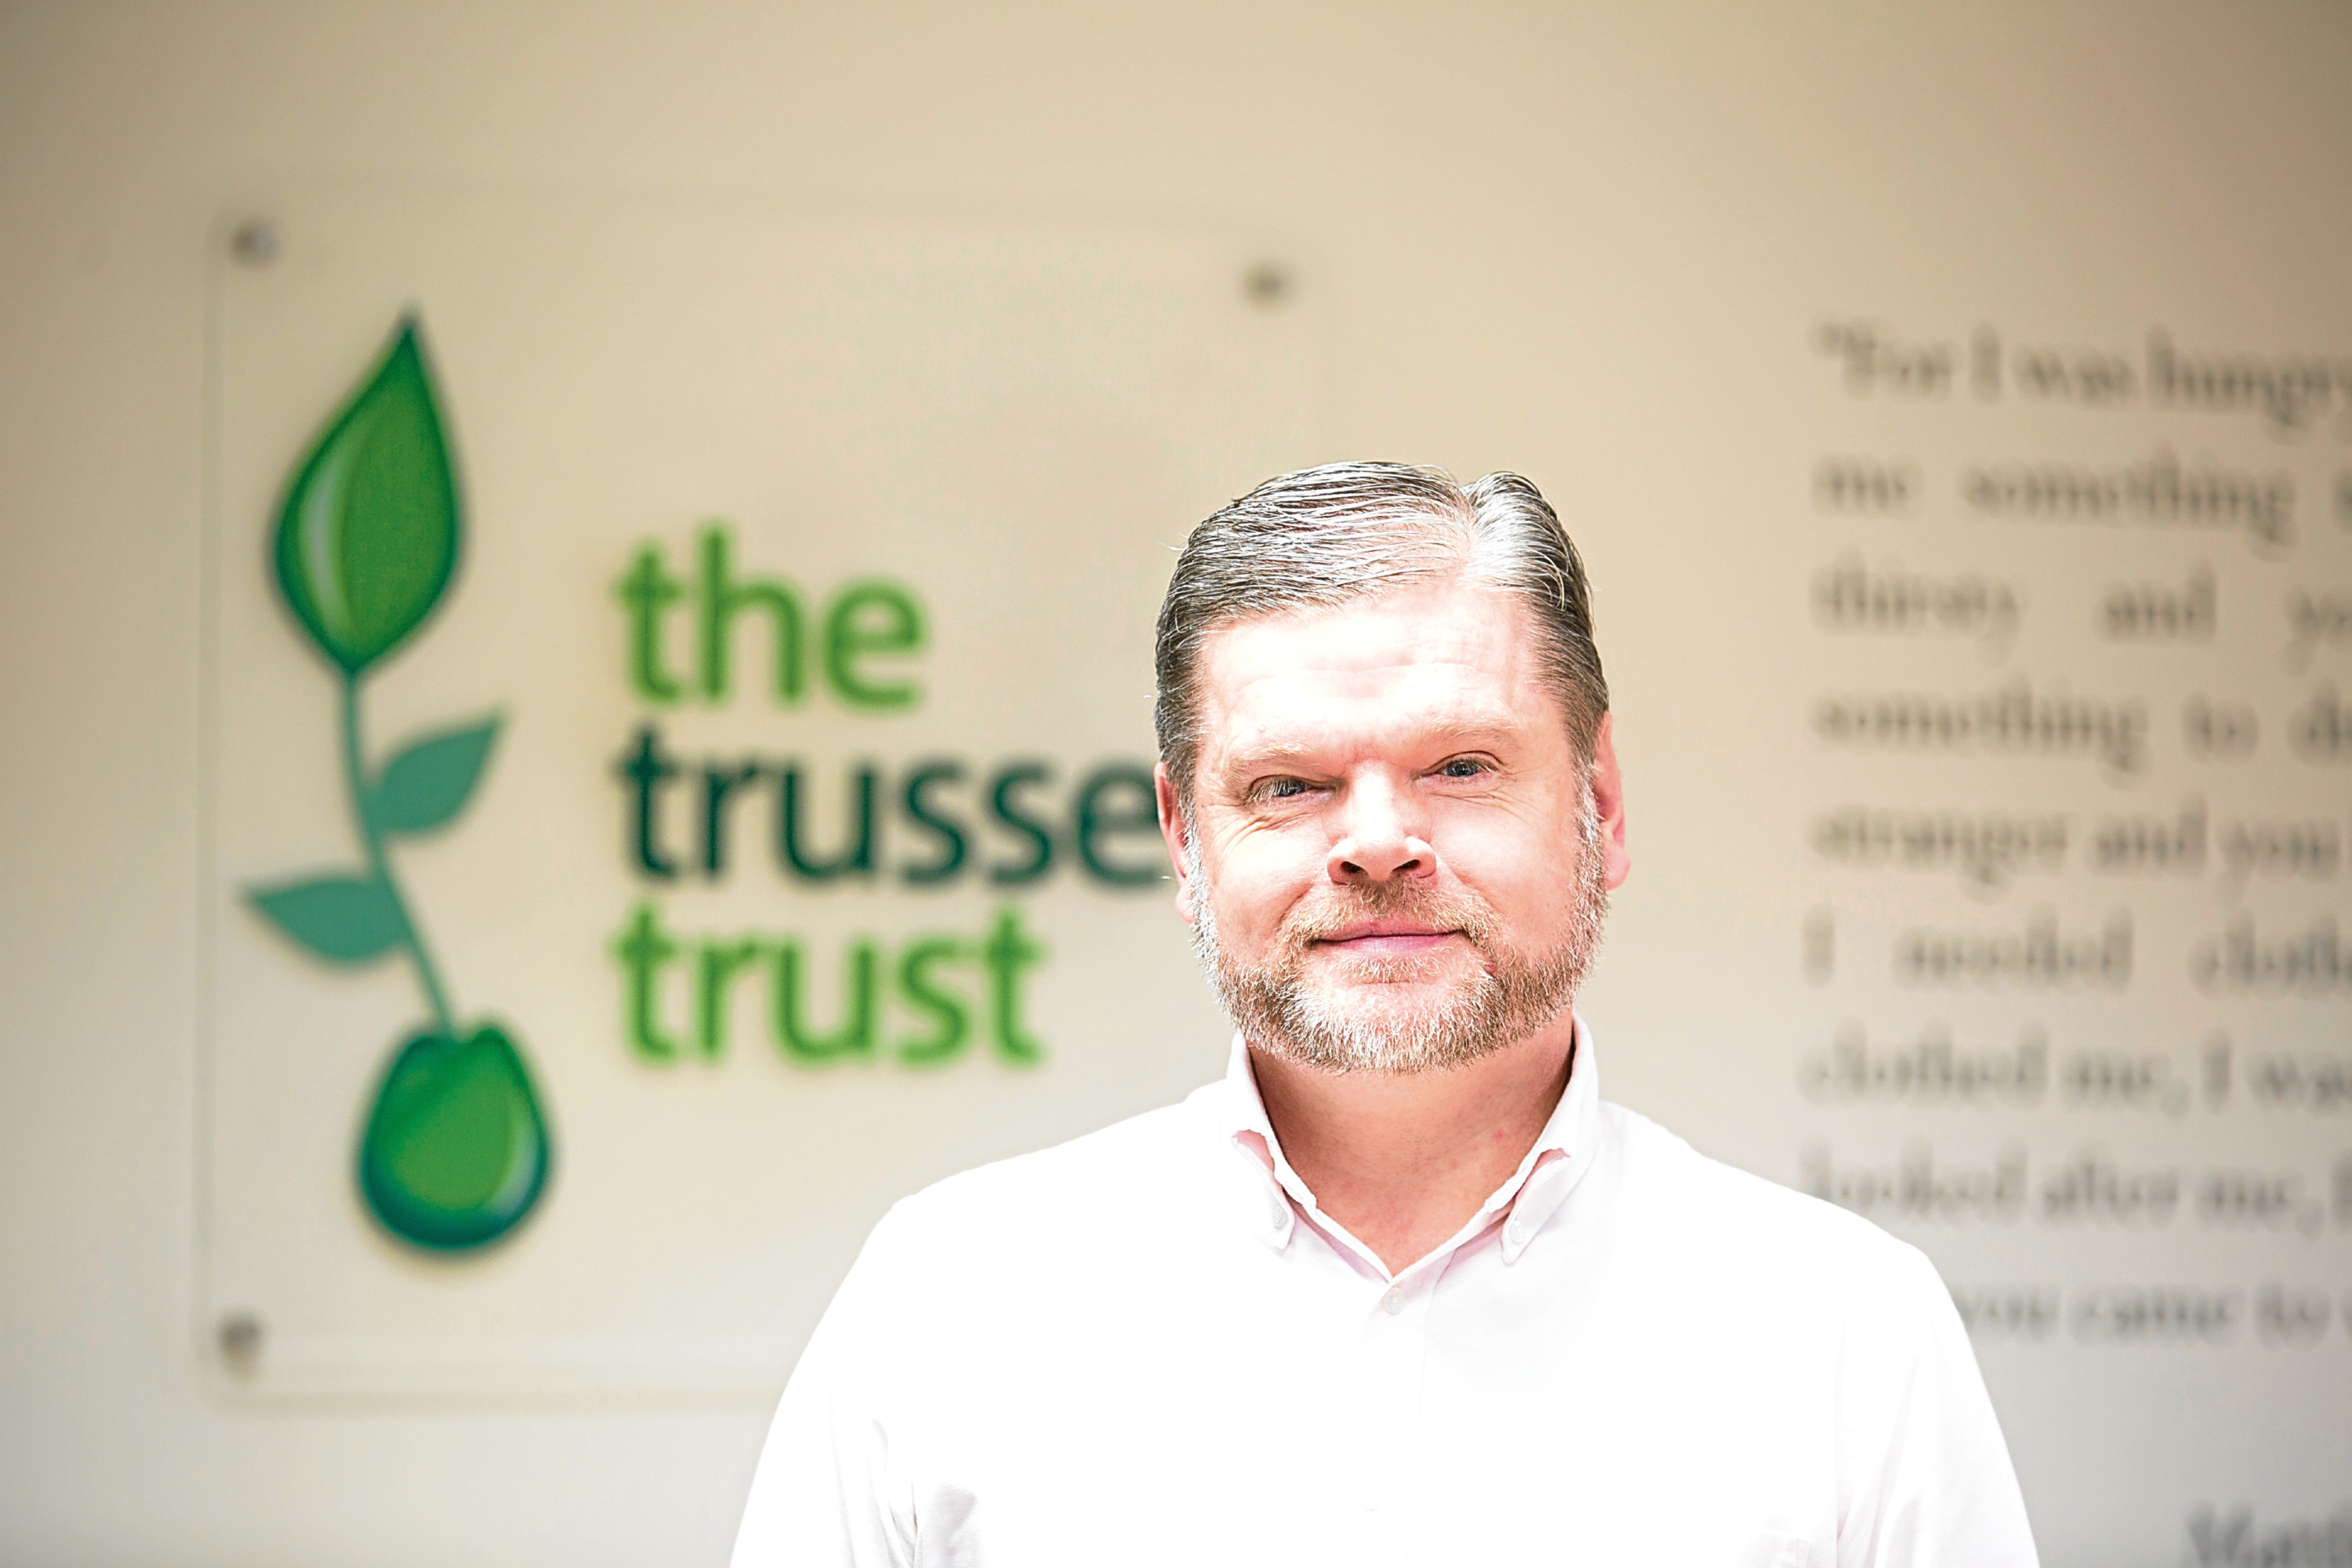 Tony Graham, director of Scotland at The Trussell Trust